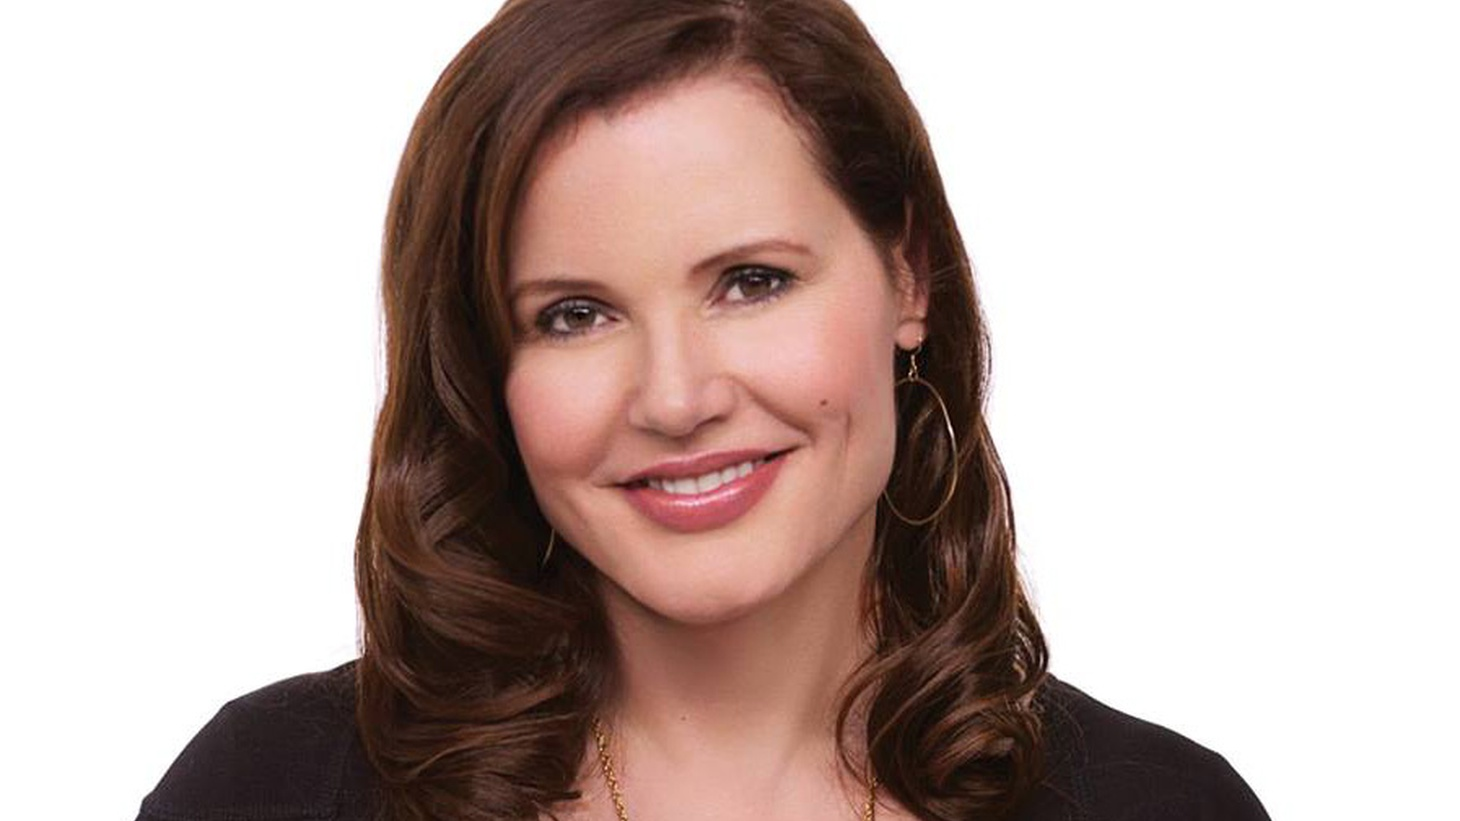 Oscar-winner Geena Davis has played some memorable roles, but she knows that great parts for women are all too rare. She shares her plan to boost diversity on the screen and behind the cameras -- by launching a film festival in Arkansas. Then, Rick Ludwin, former head of NBC late night, shares insight from more than 30 years on the job.